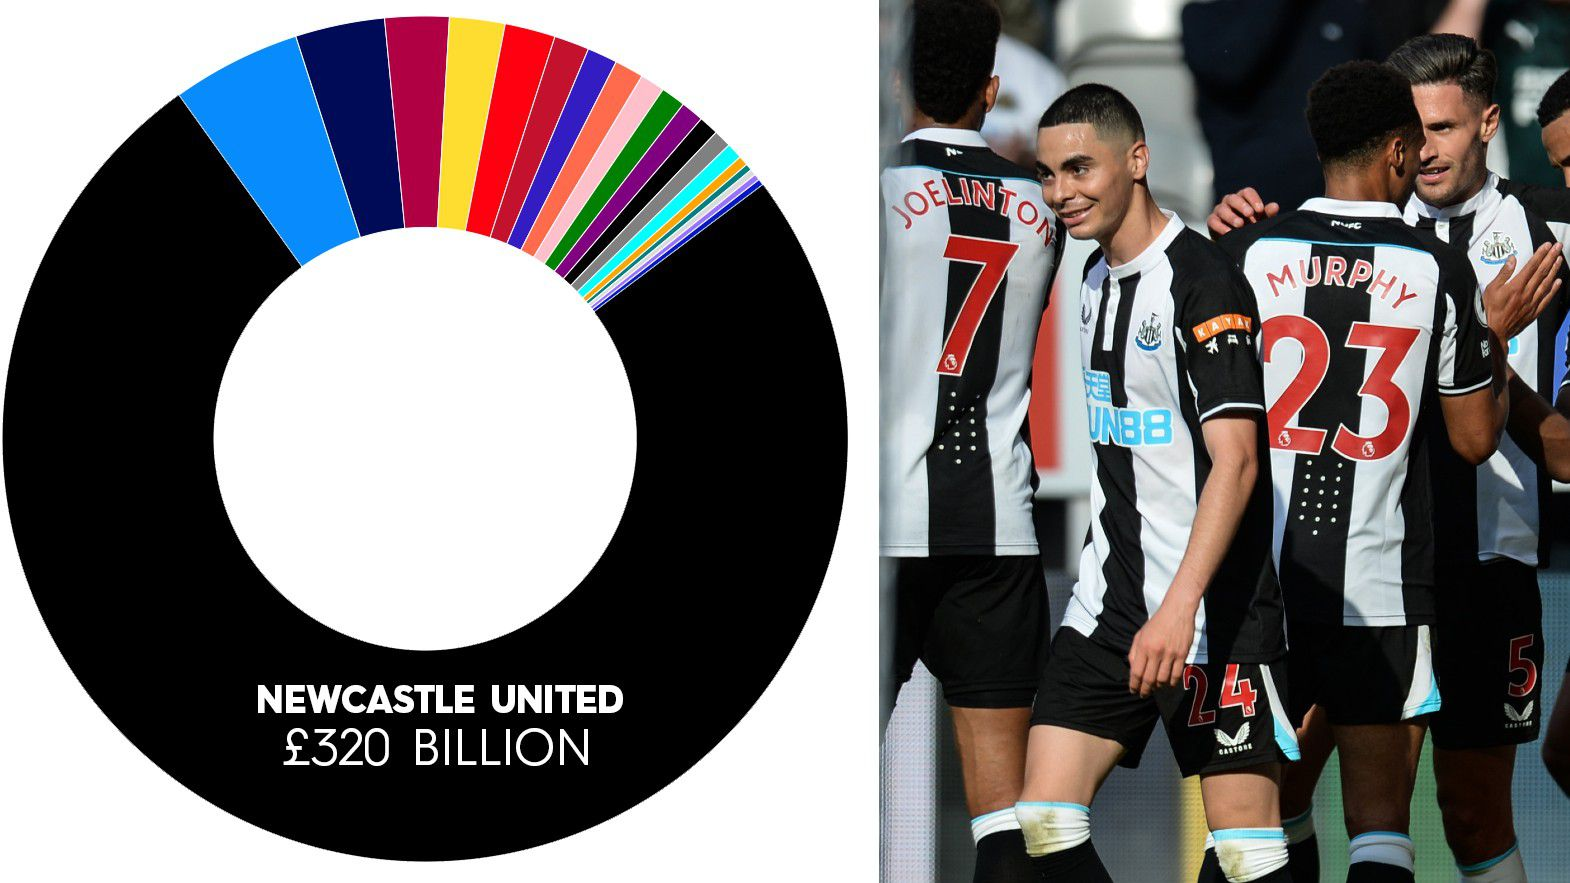 Premier League club Newcastle United bought by Saudi sovereign fund